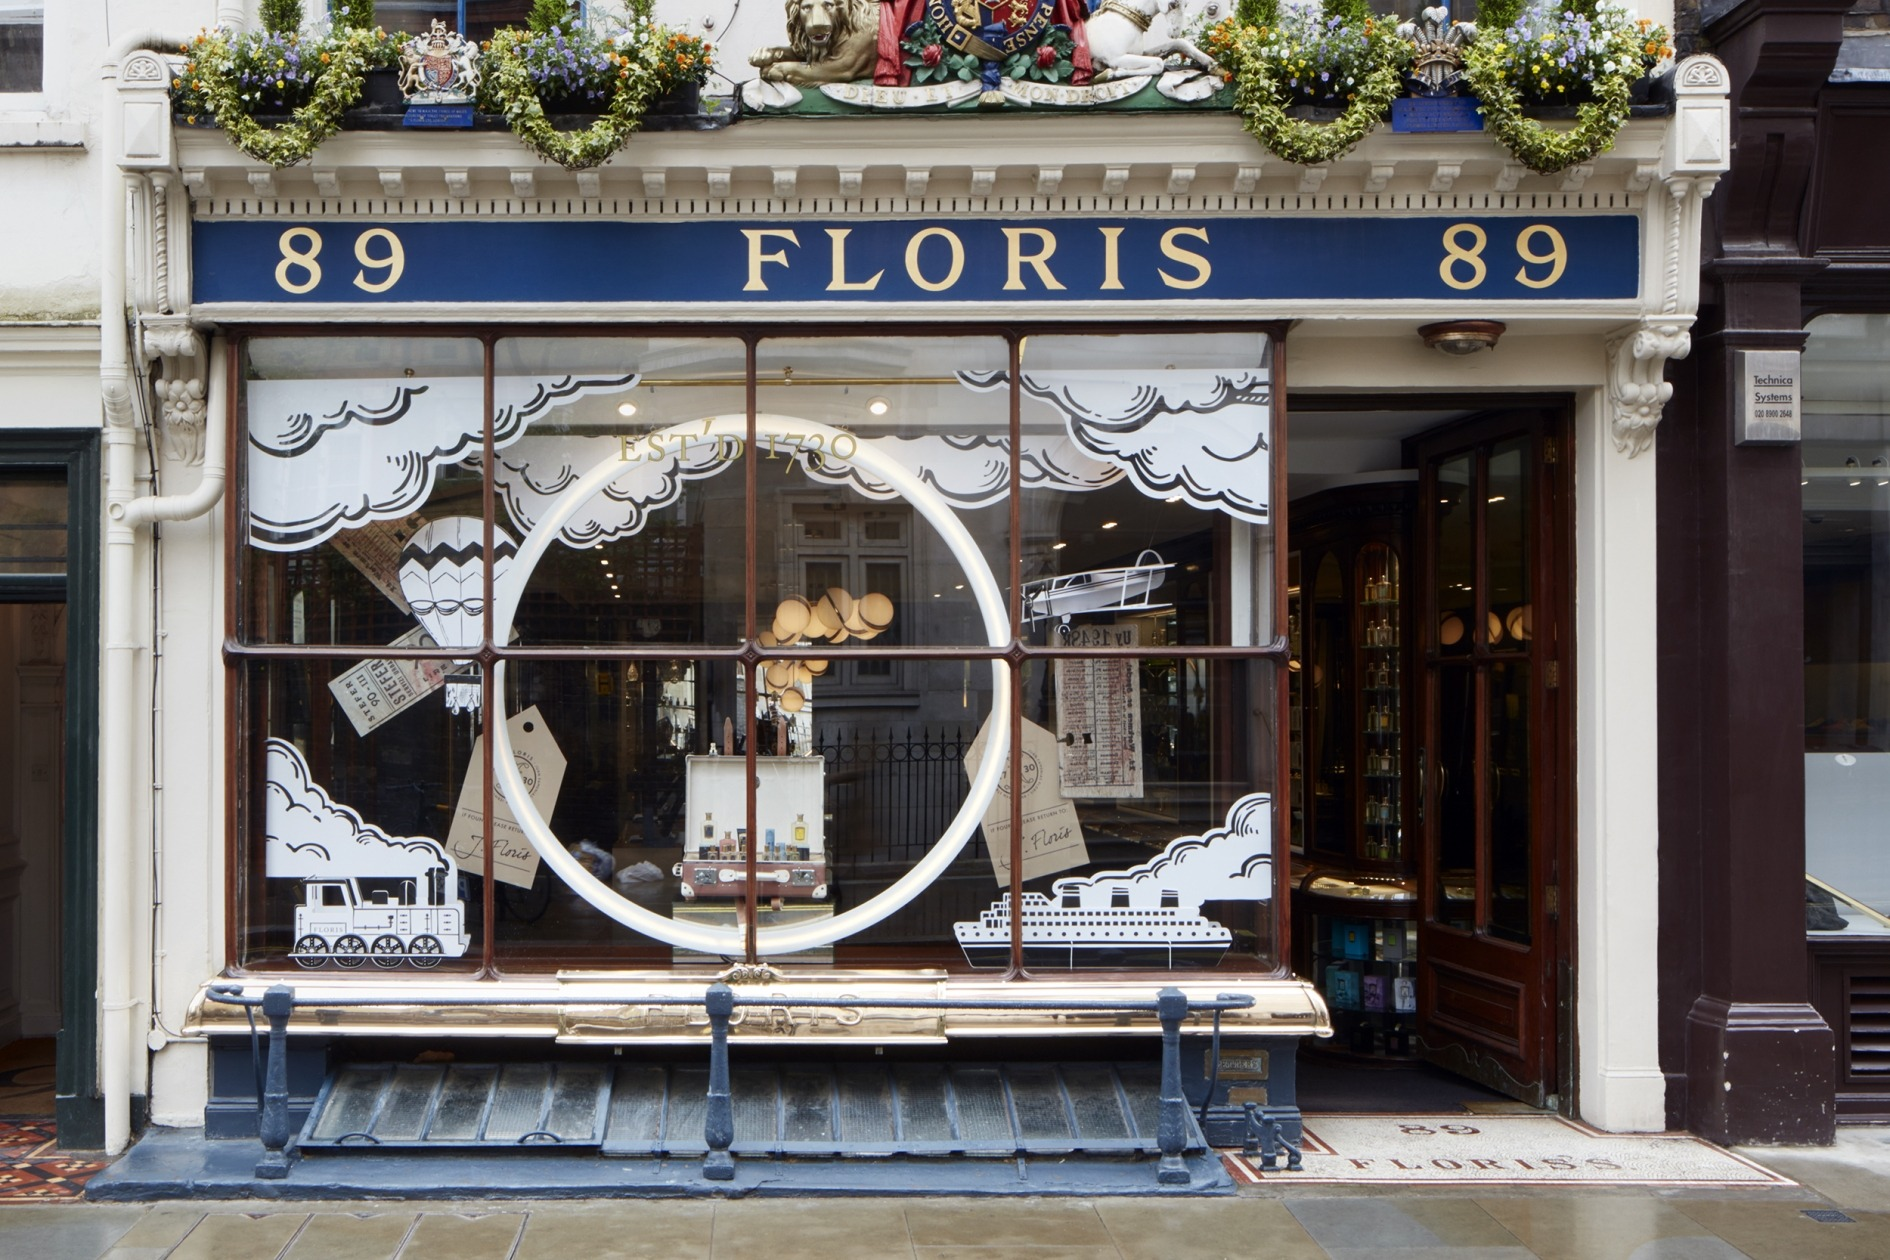 The Floris store at 89 Jermyn Street